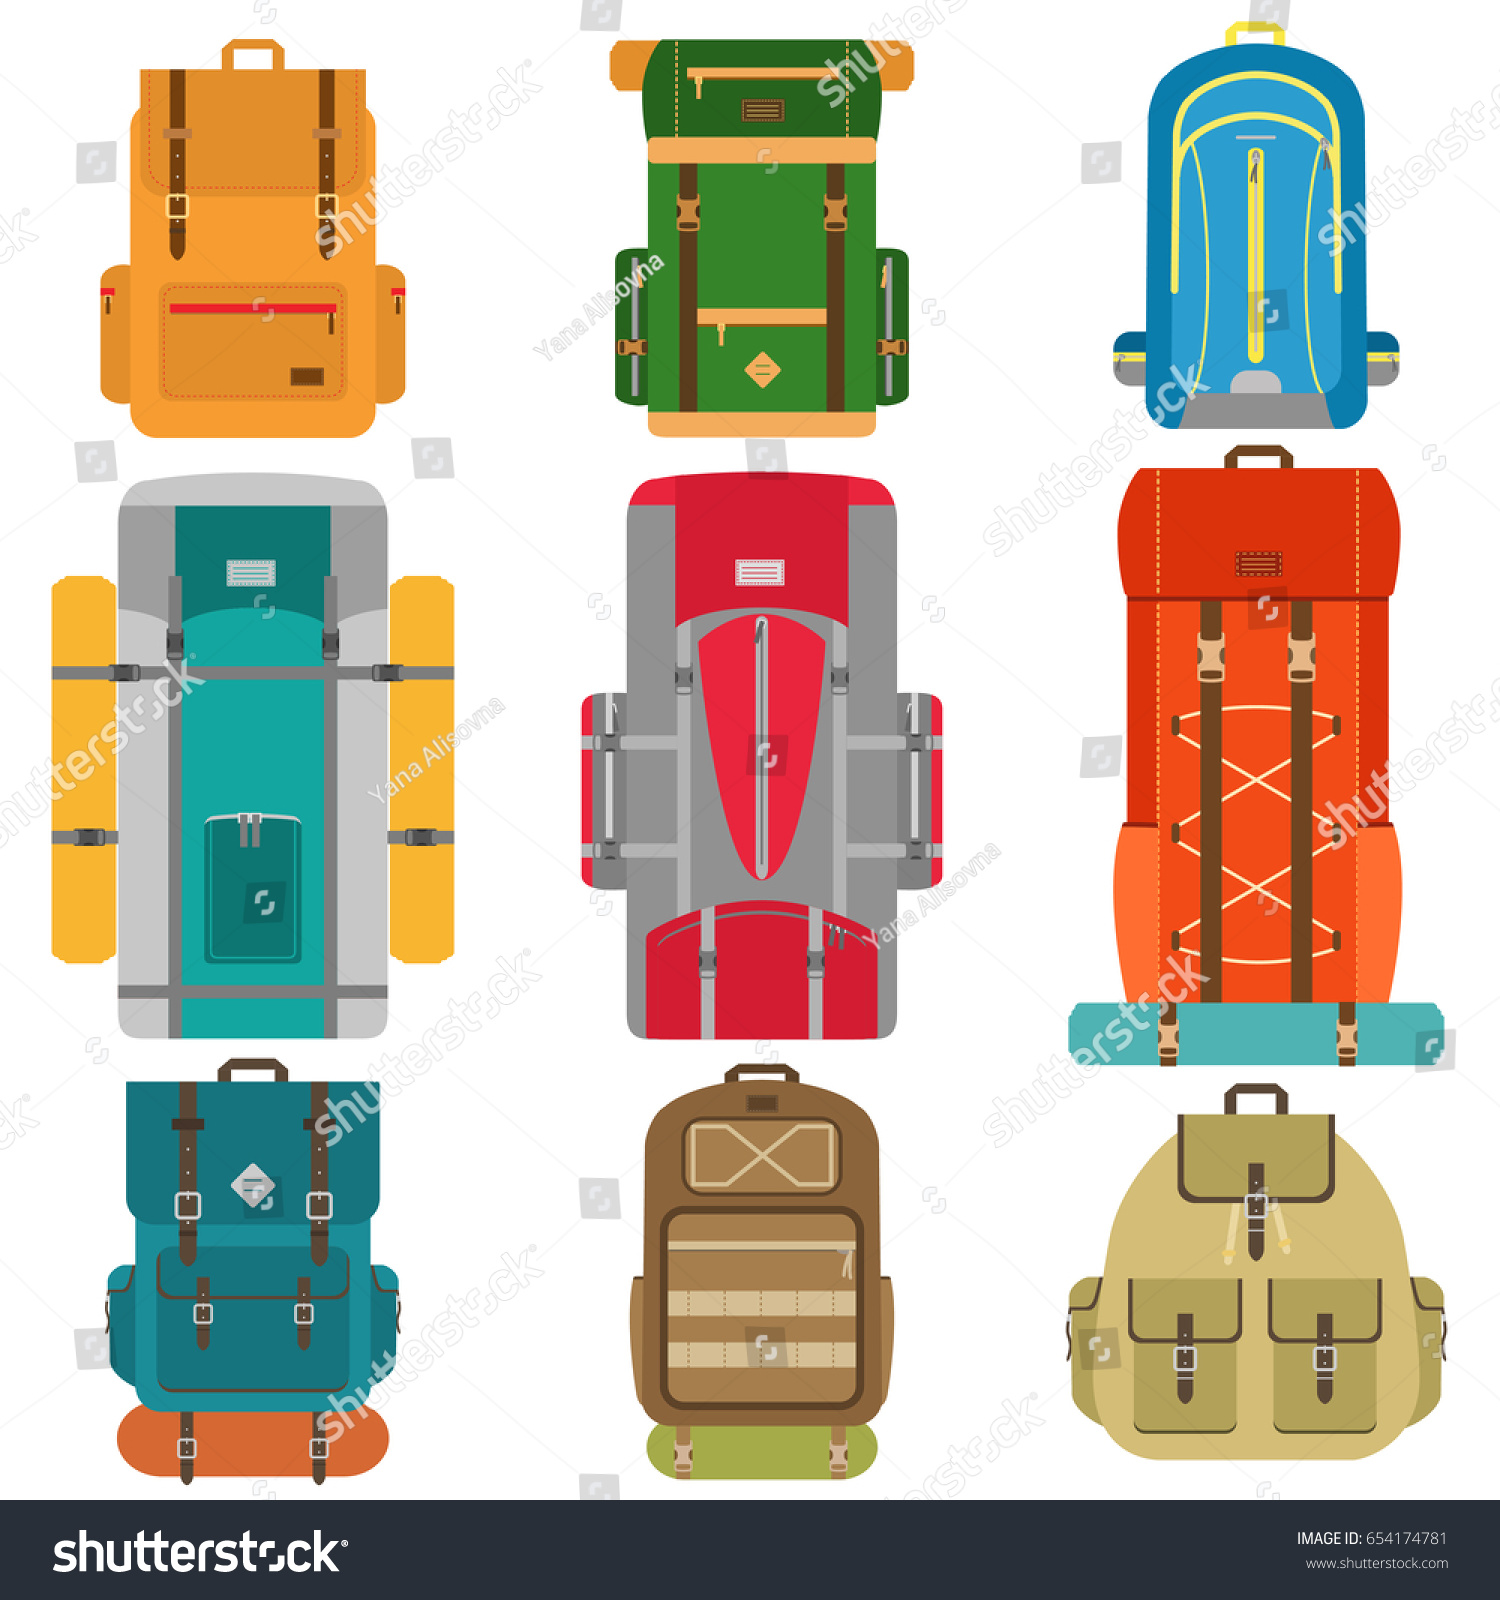 Set Of Camping Backpacks Tourist Hiking With Sleeping Bags Flat Design Vector Illustration